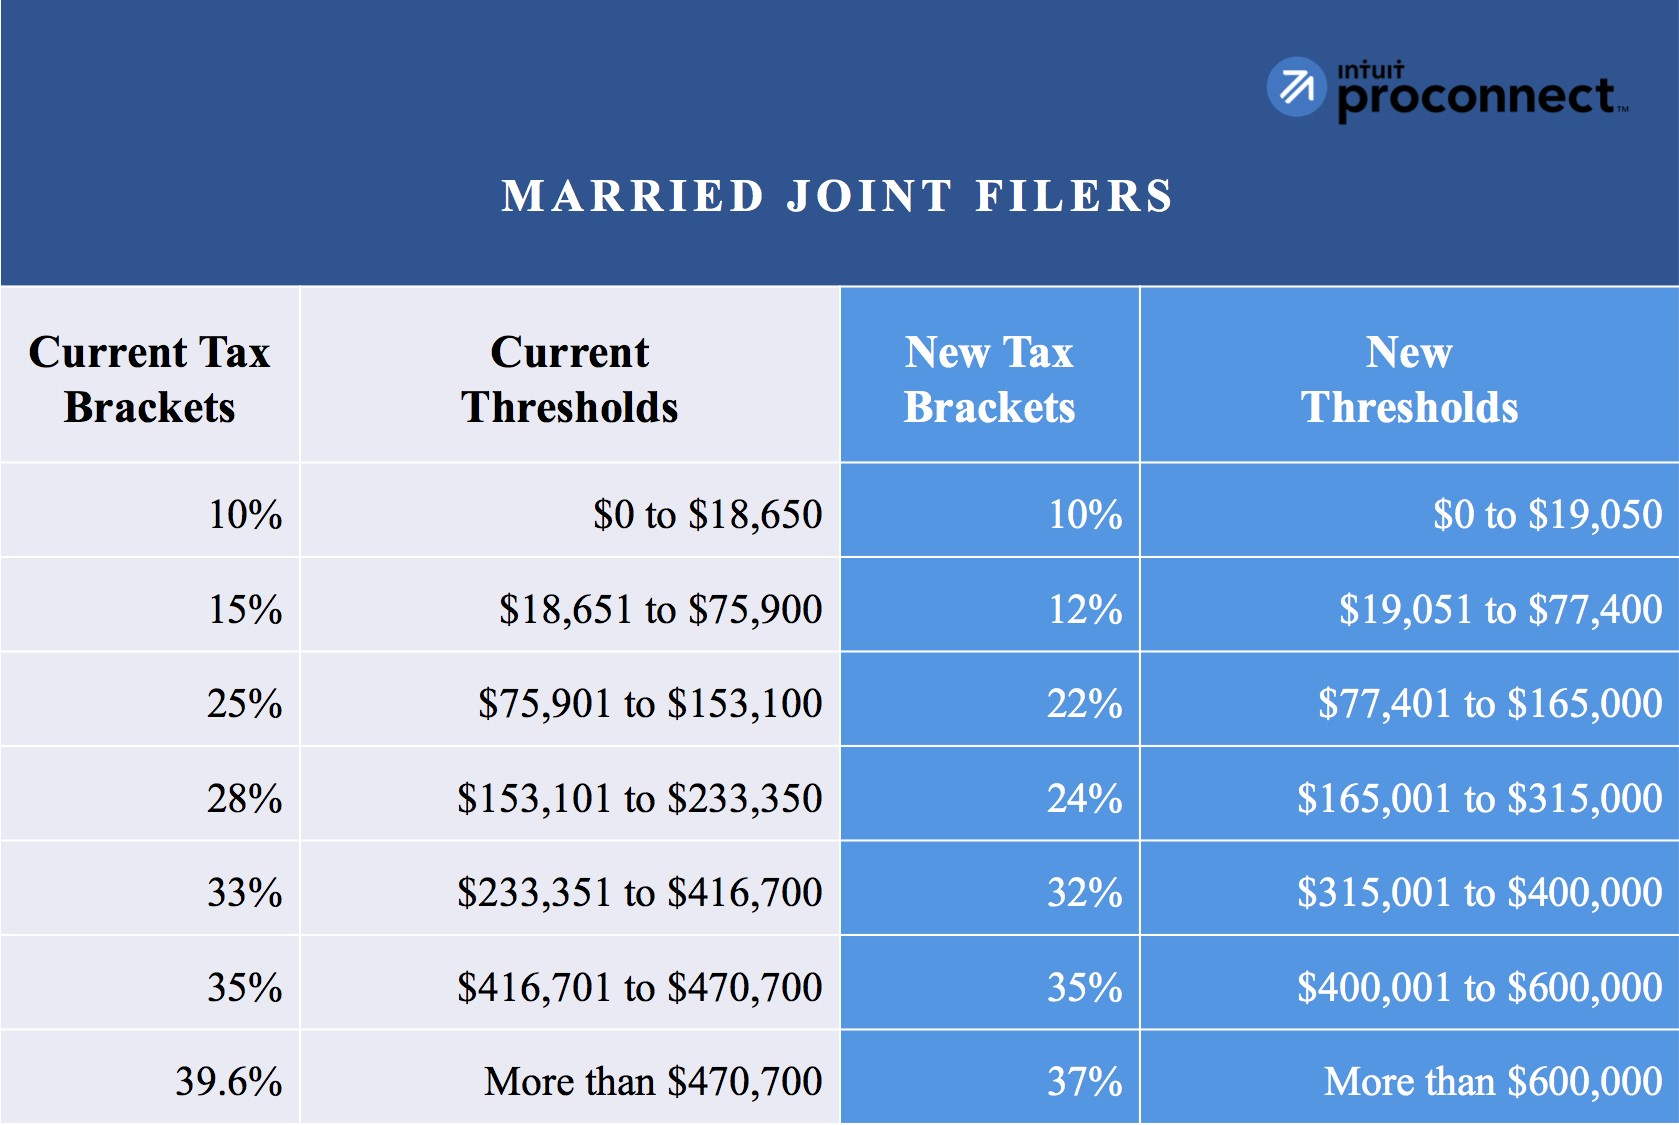 Married Joint Filers